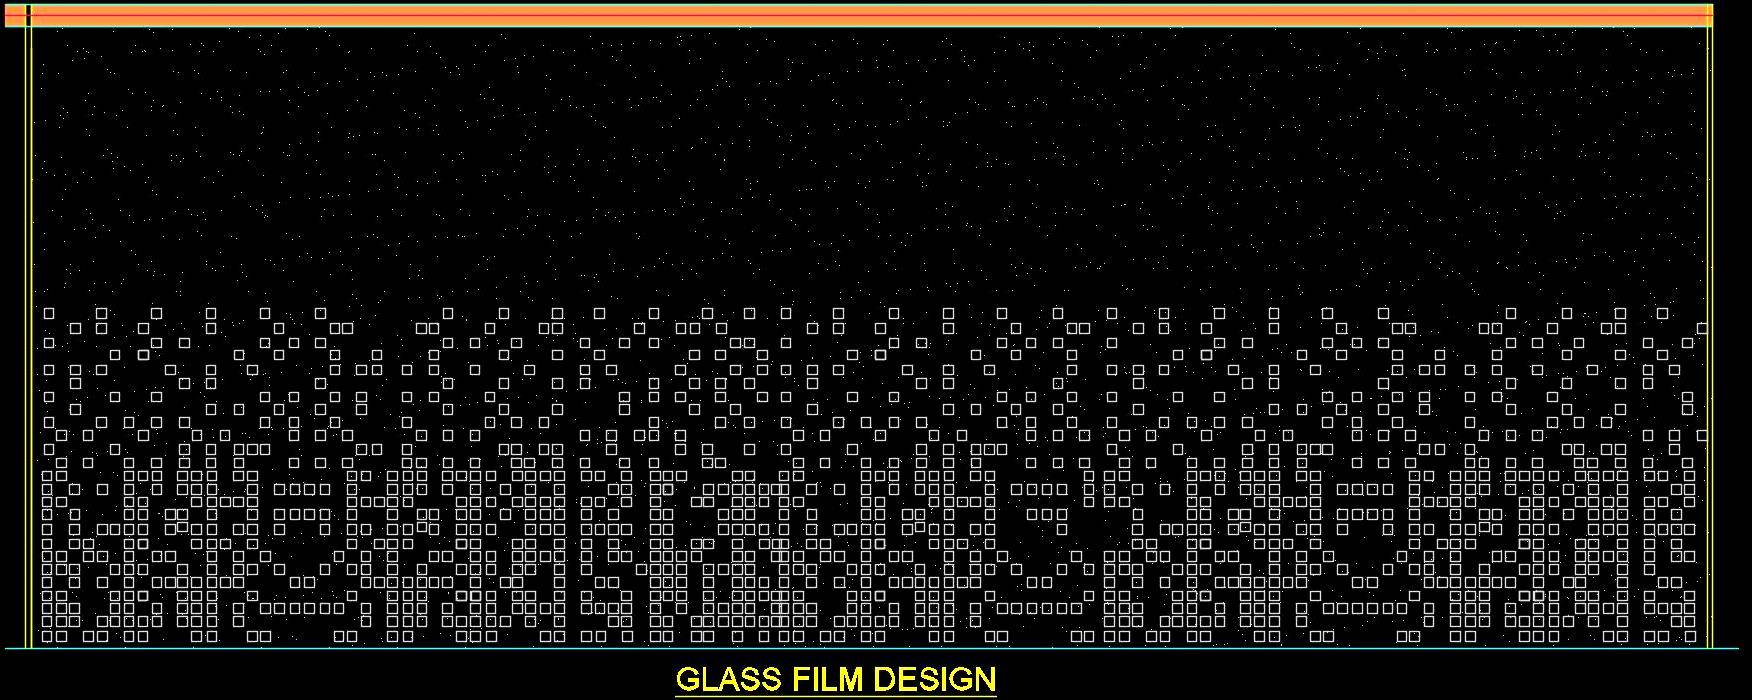 Glass Film Design Cad Drawing